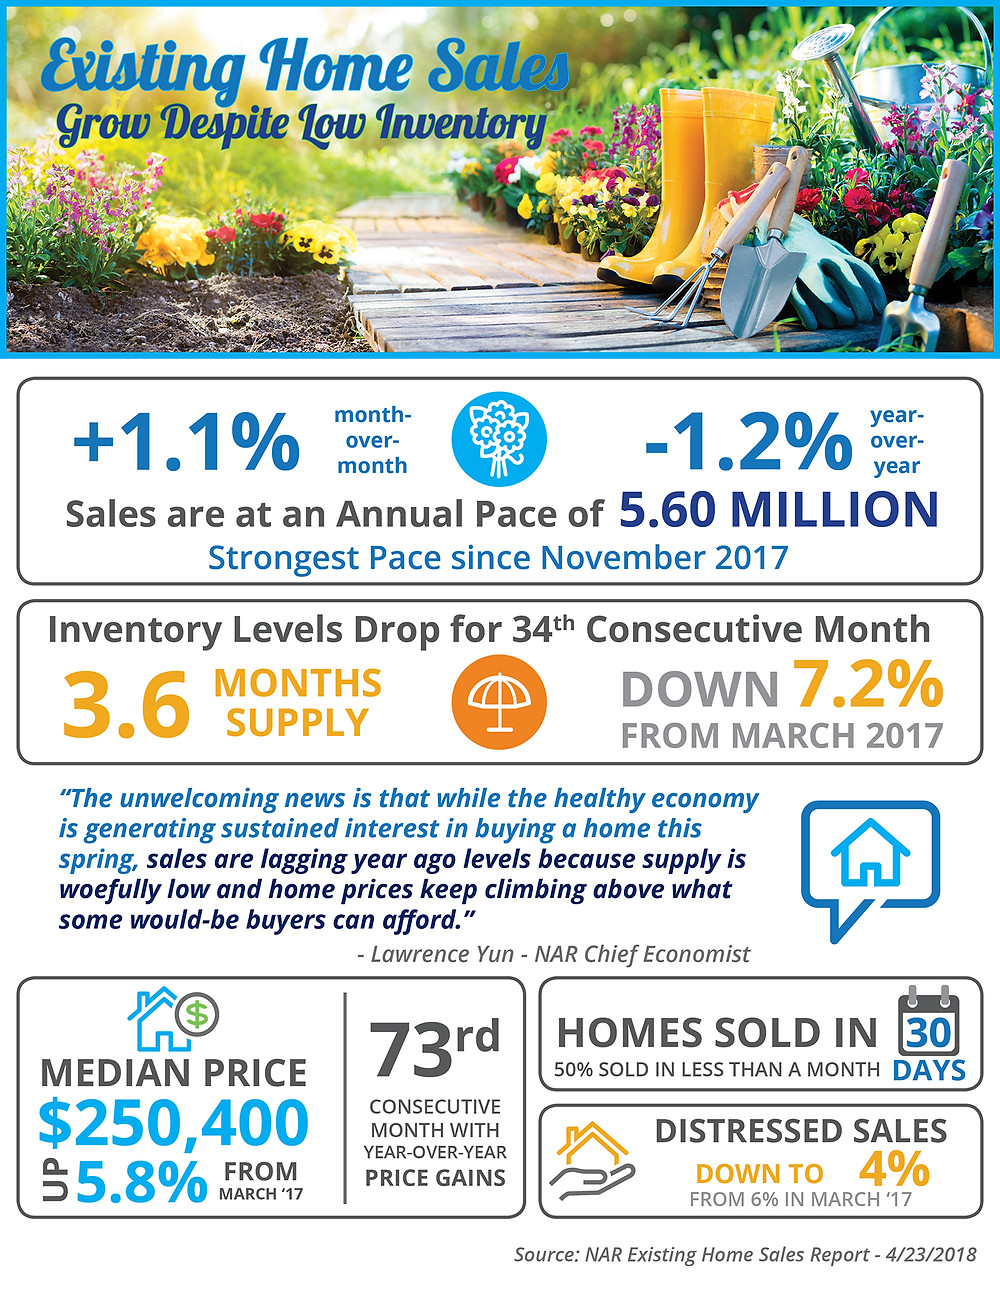 Existing Home Sales Grow Despite Low Inventory [INFOGRAPHIC]   Simplifying the Market